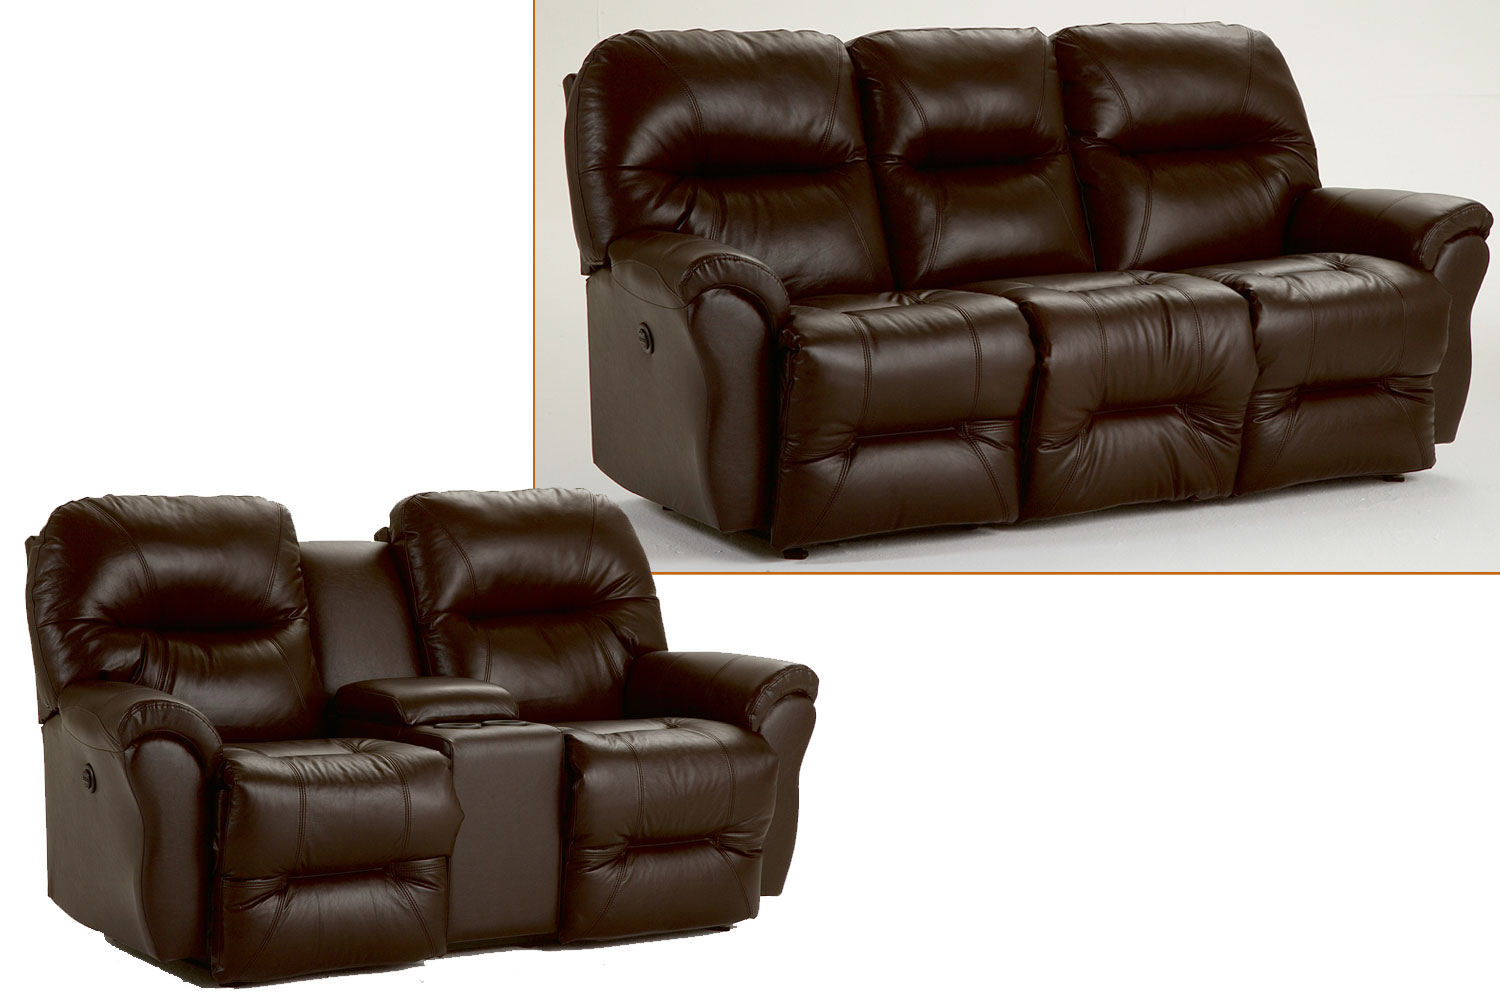 Reclining jasen 39 s fine furniture since 1951 Leather reclining sofa loveseat